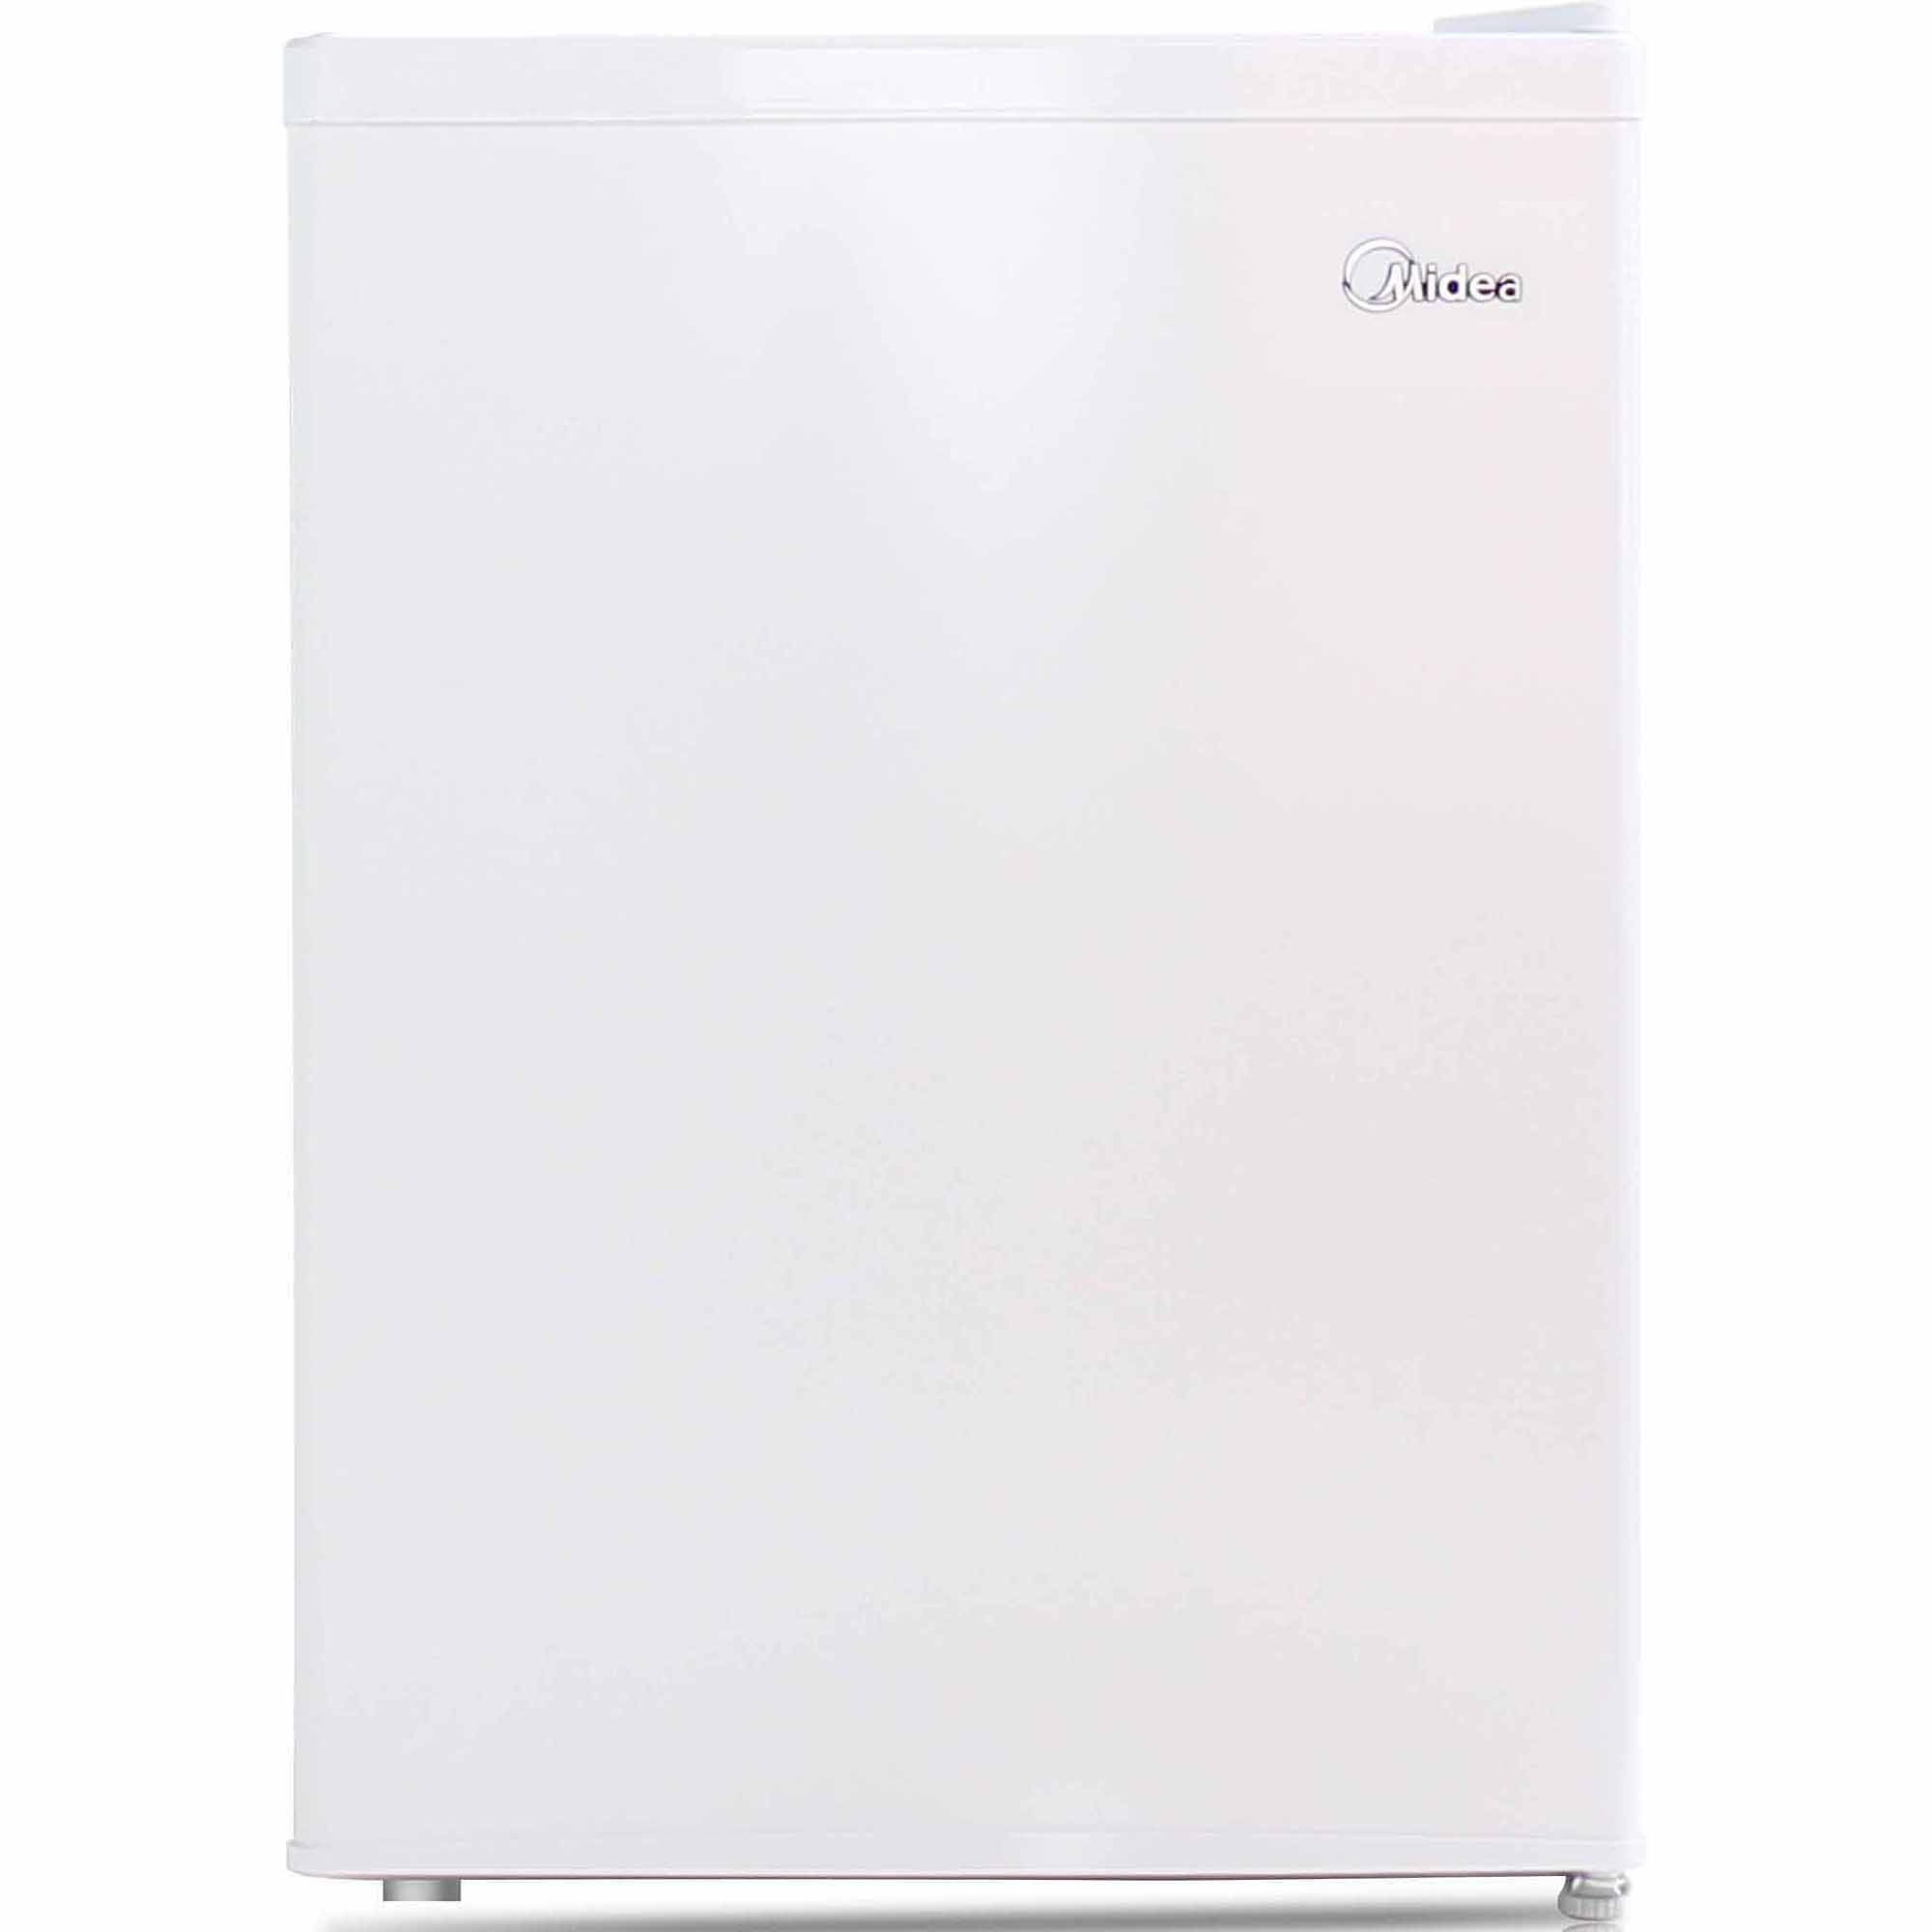 Midea 2.4 cubic foot, Compact Refrigerator, White